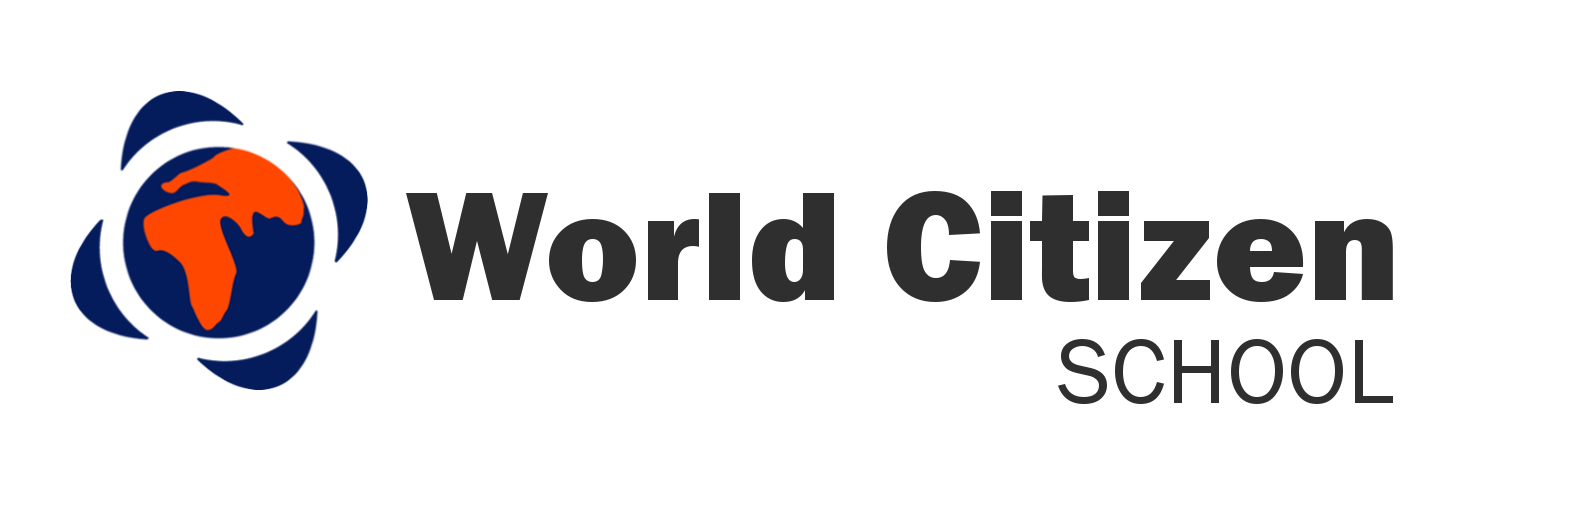 WorldCitizen_SCHOOL_Logo_14.Mai_FINAL.png